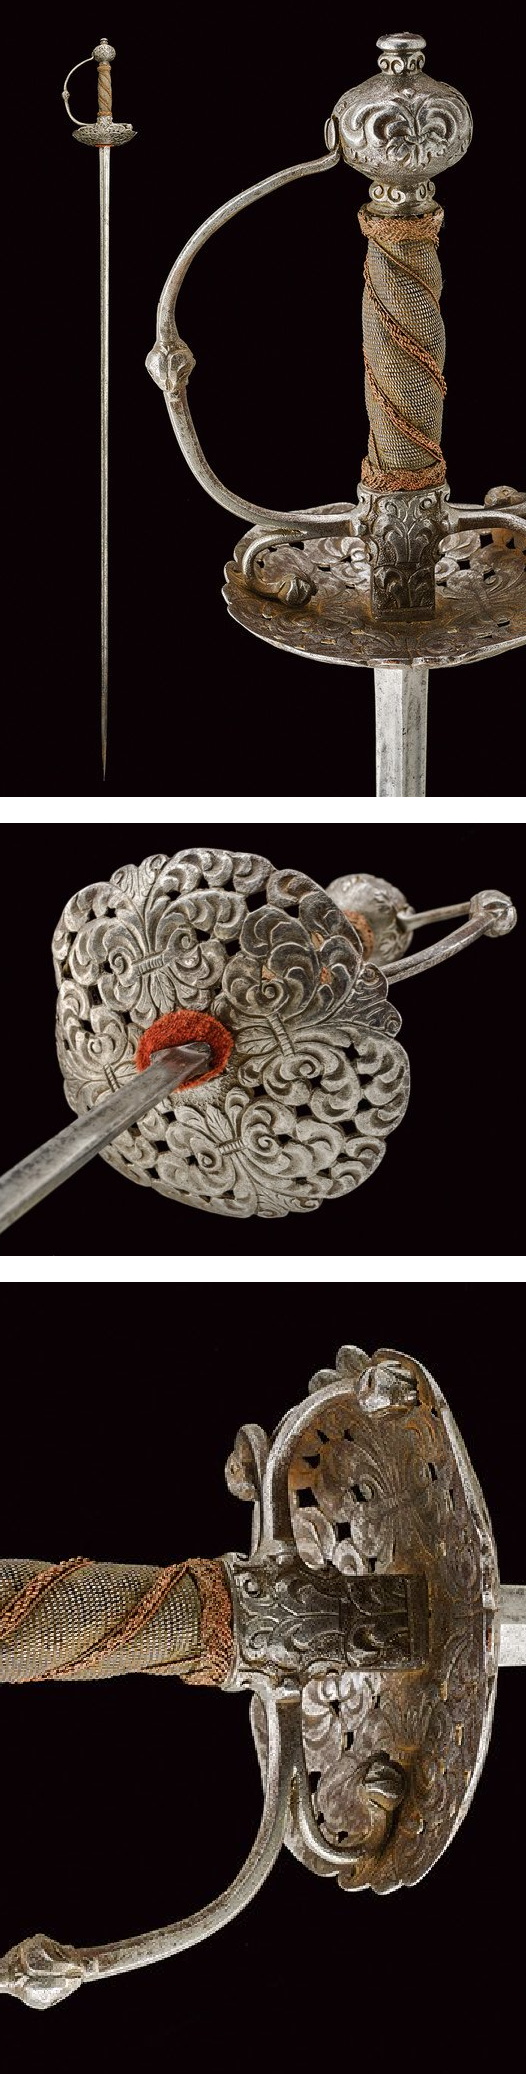 A fencing sword,dating: last quarter of the 17th Century provenance: Germany.